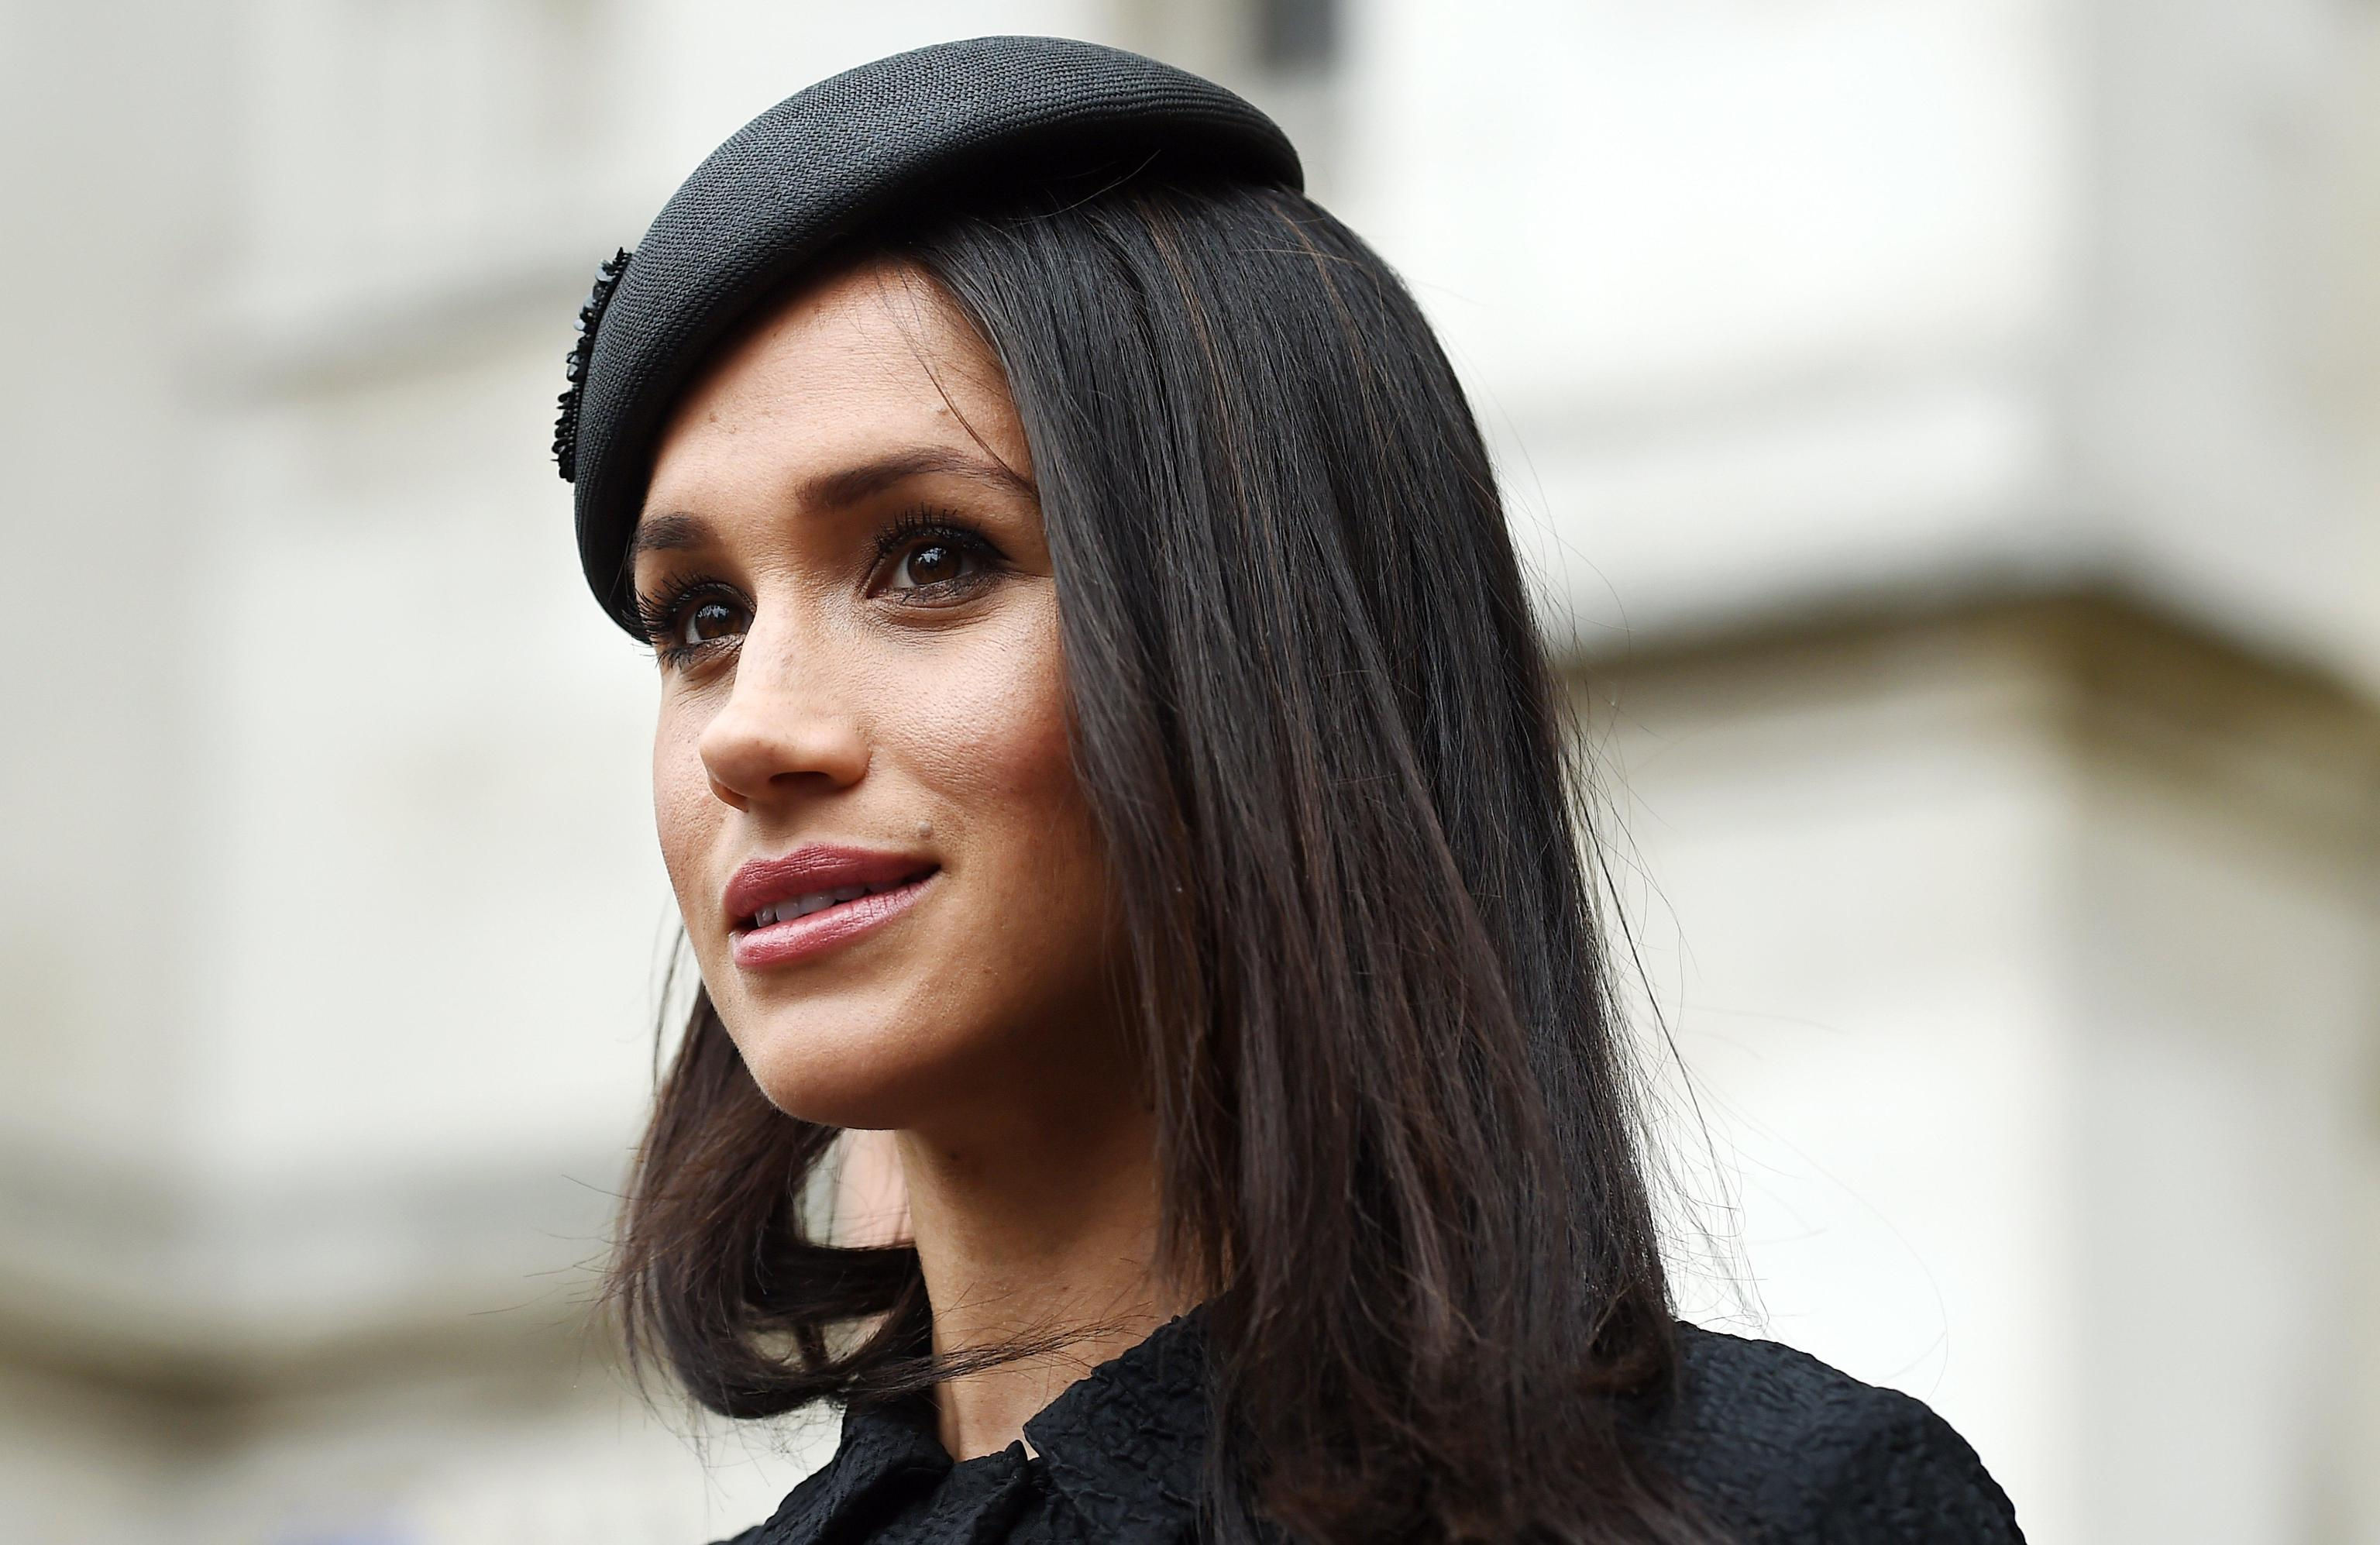 Royals attend Anzac Day commemorations in London